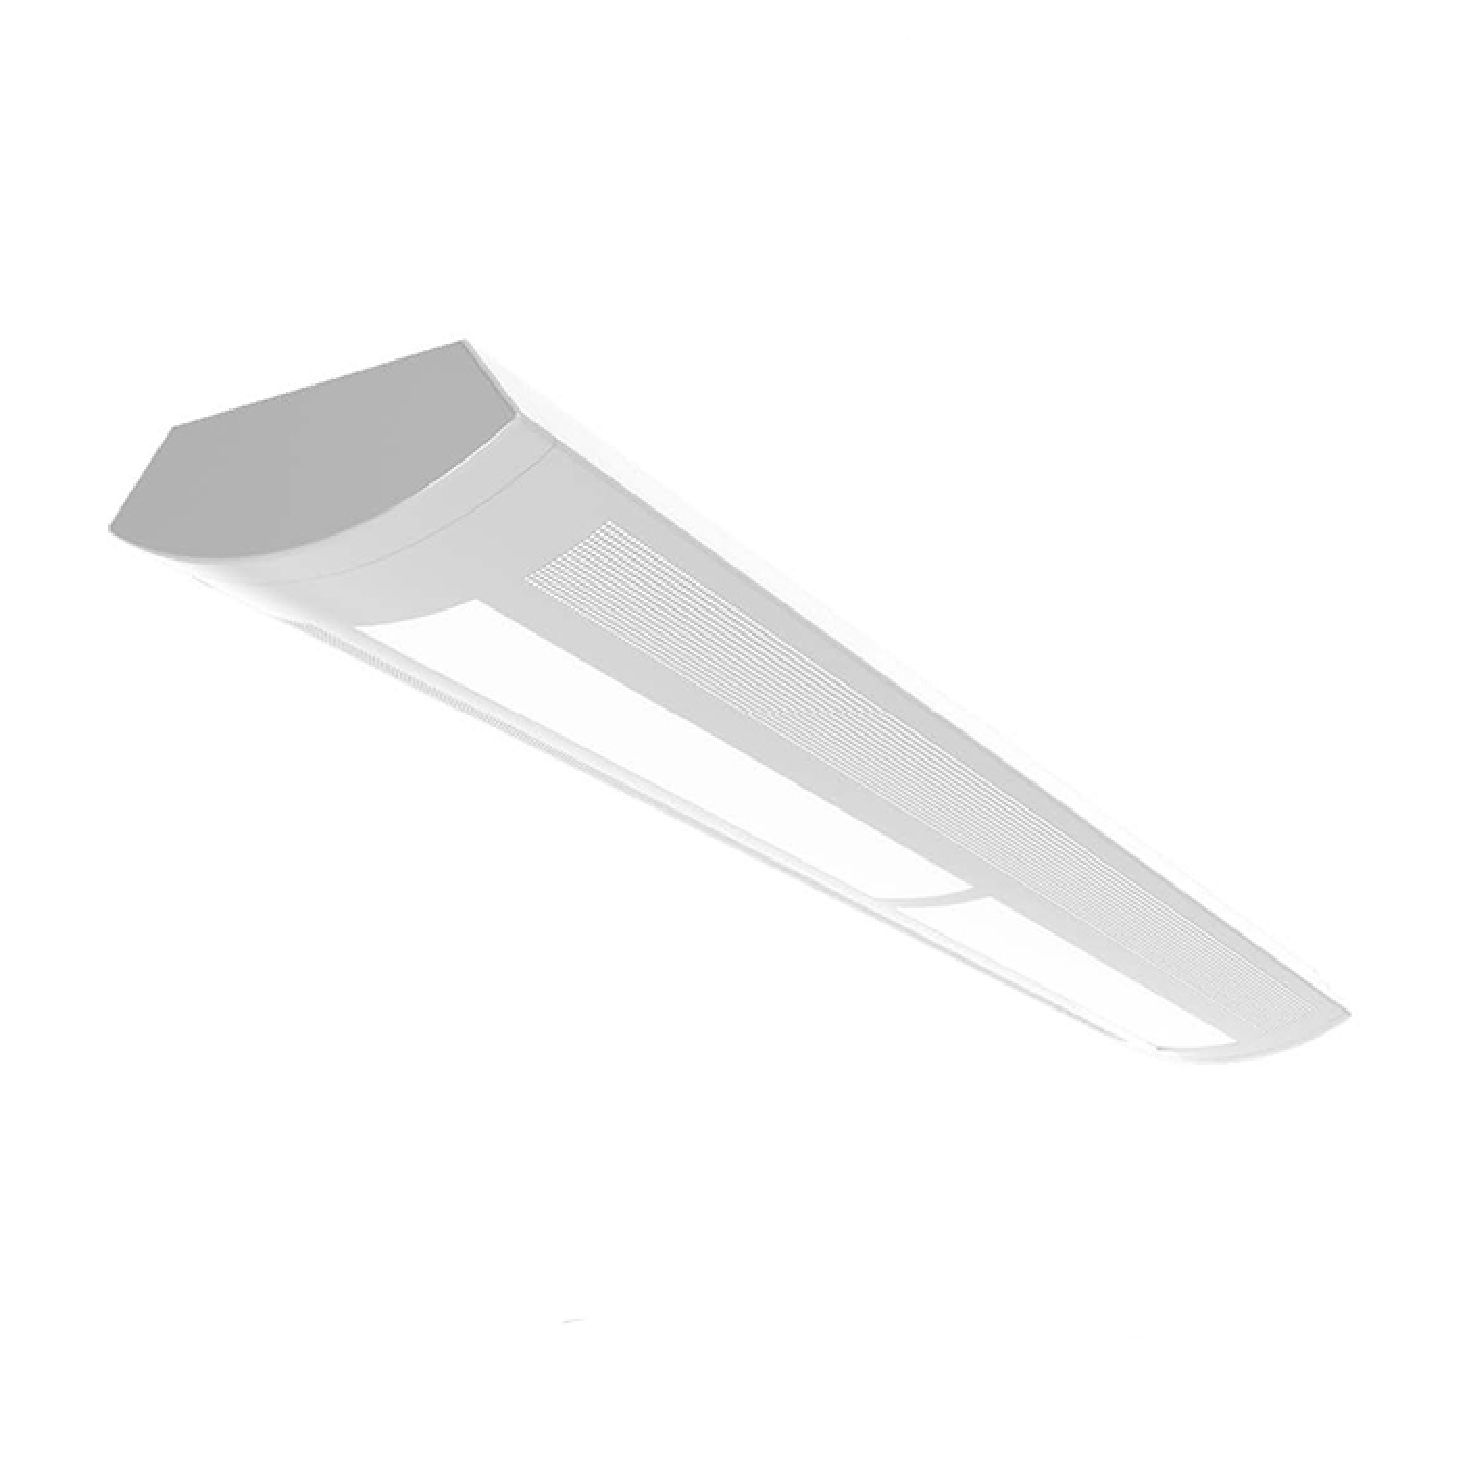 Alcon Lighting 10123-8 Architectural 8 FT Suspended Linear